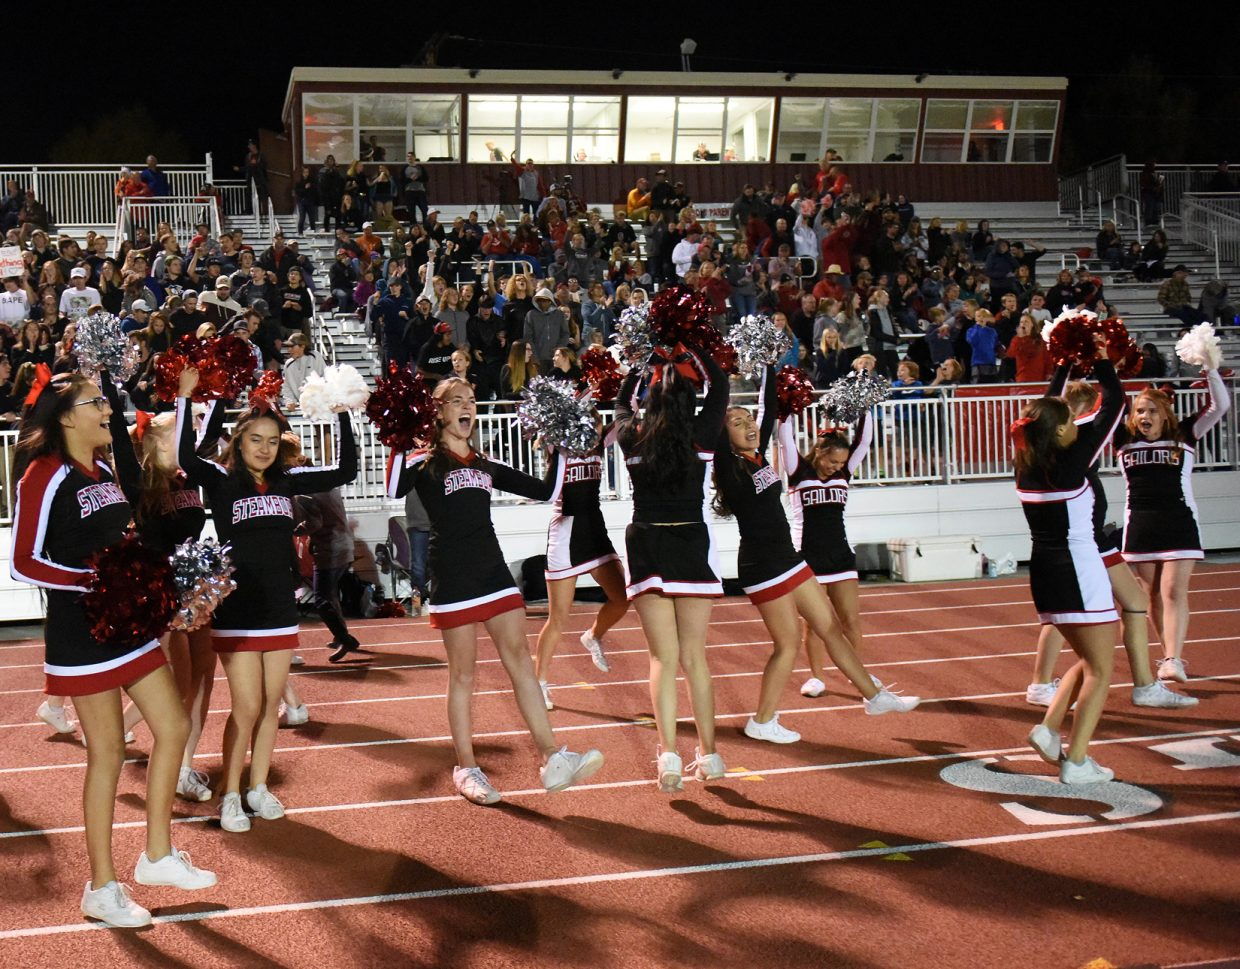 The Steamboat Springs High School cheerleading team celebrates the football team's 40-7 win against Hotchkiss on Friday night.